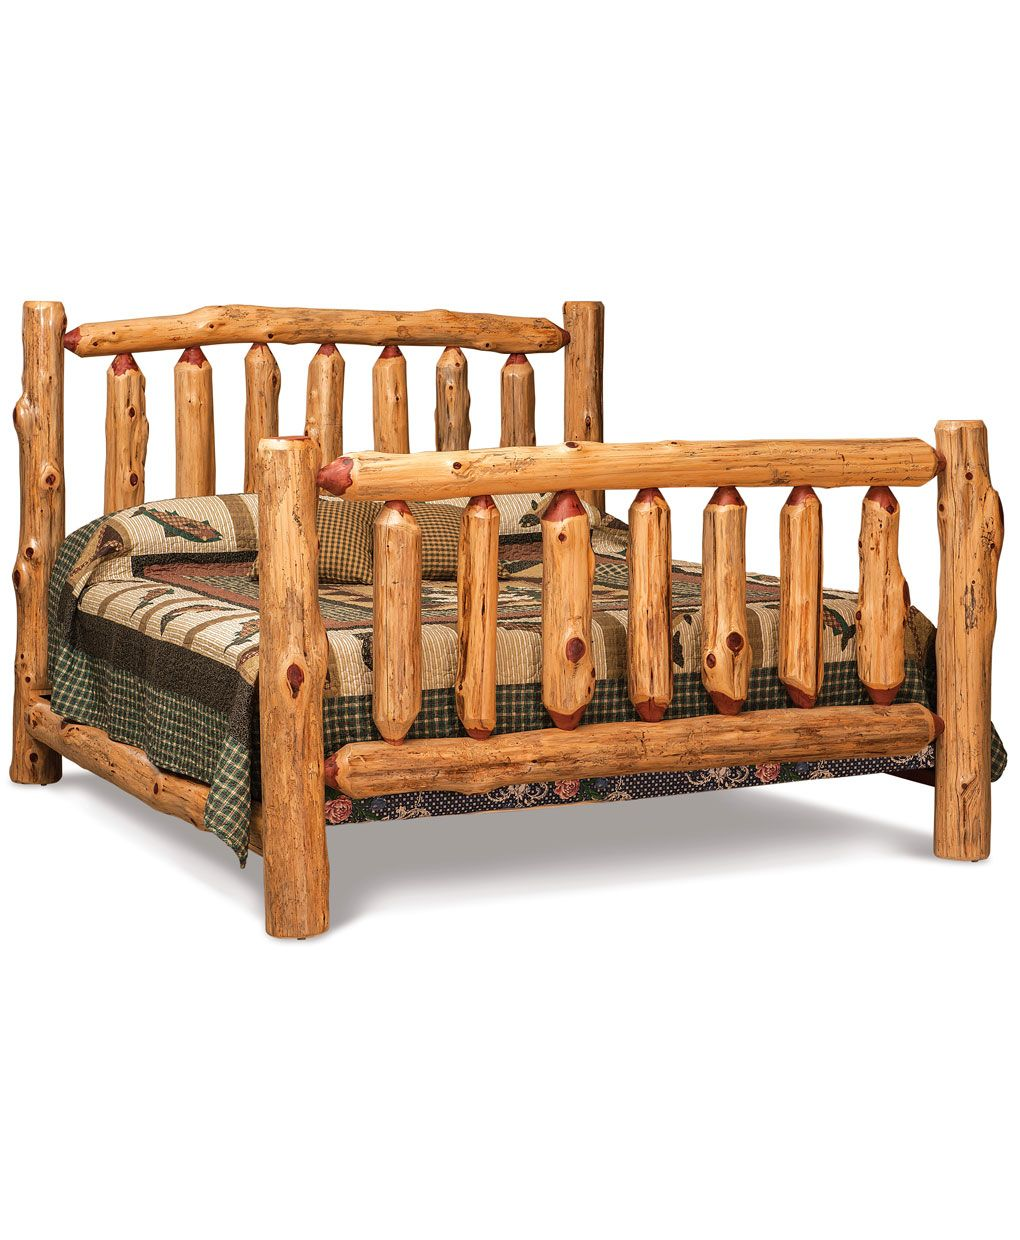 The log full poster bed is made from real solid wood logs